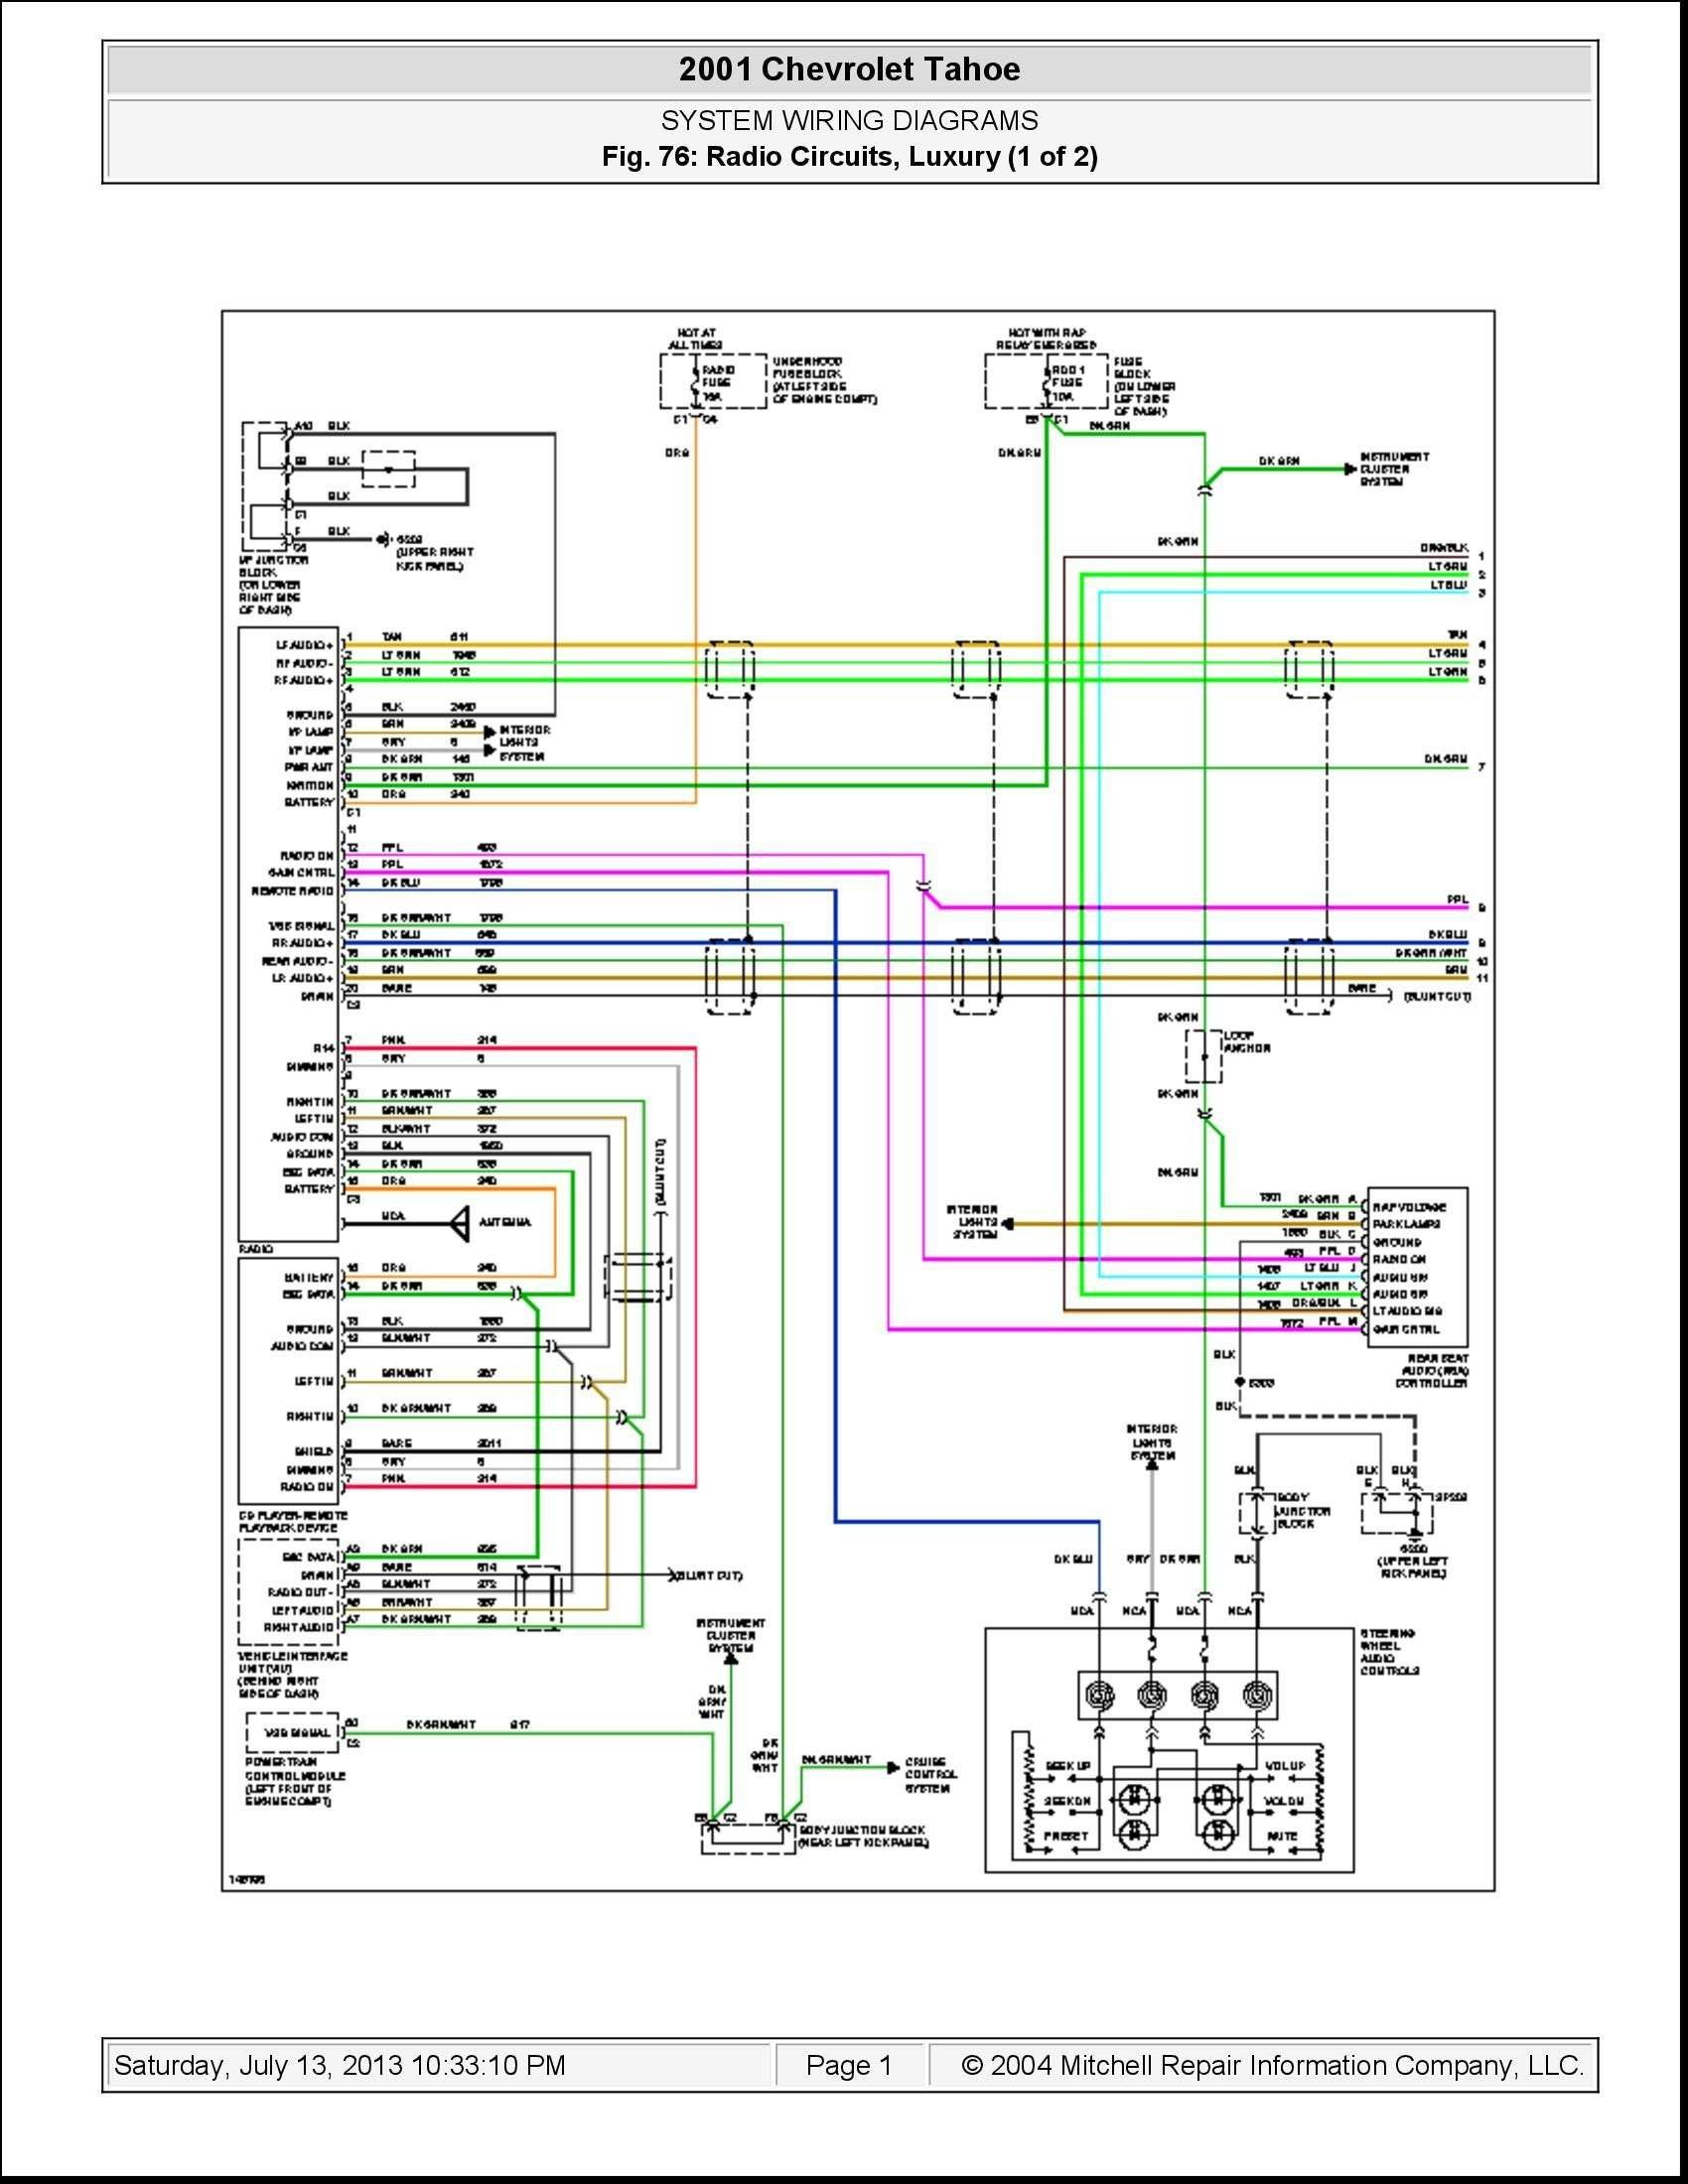 Chevy Equinox Stereo Wiring Diagram Libraries 2007 Grand Prix Radio Chevrolet Harness Library2007 Diy Enthusiasts